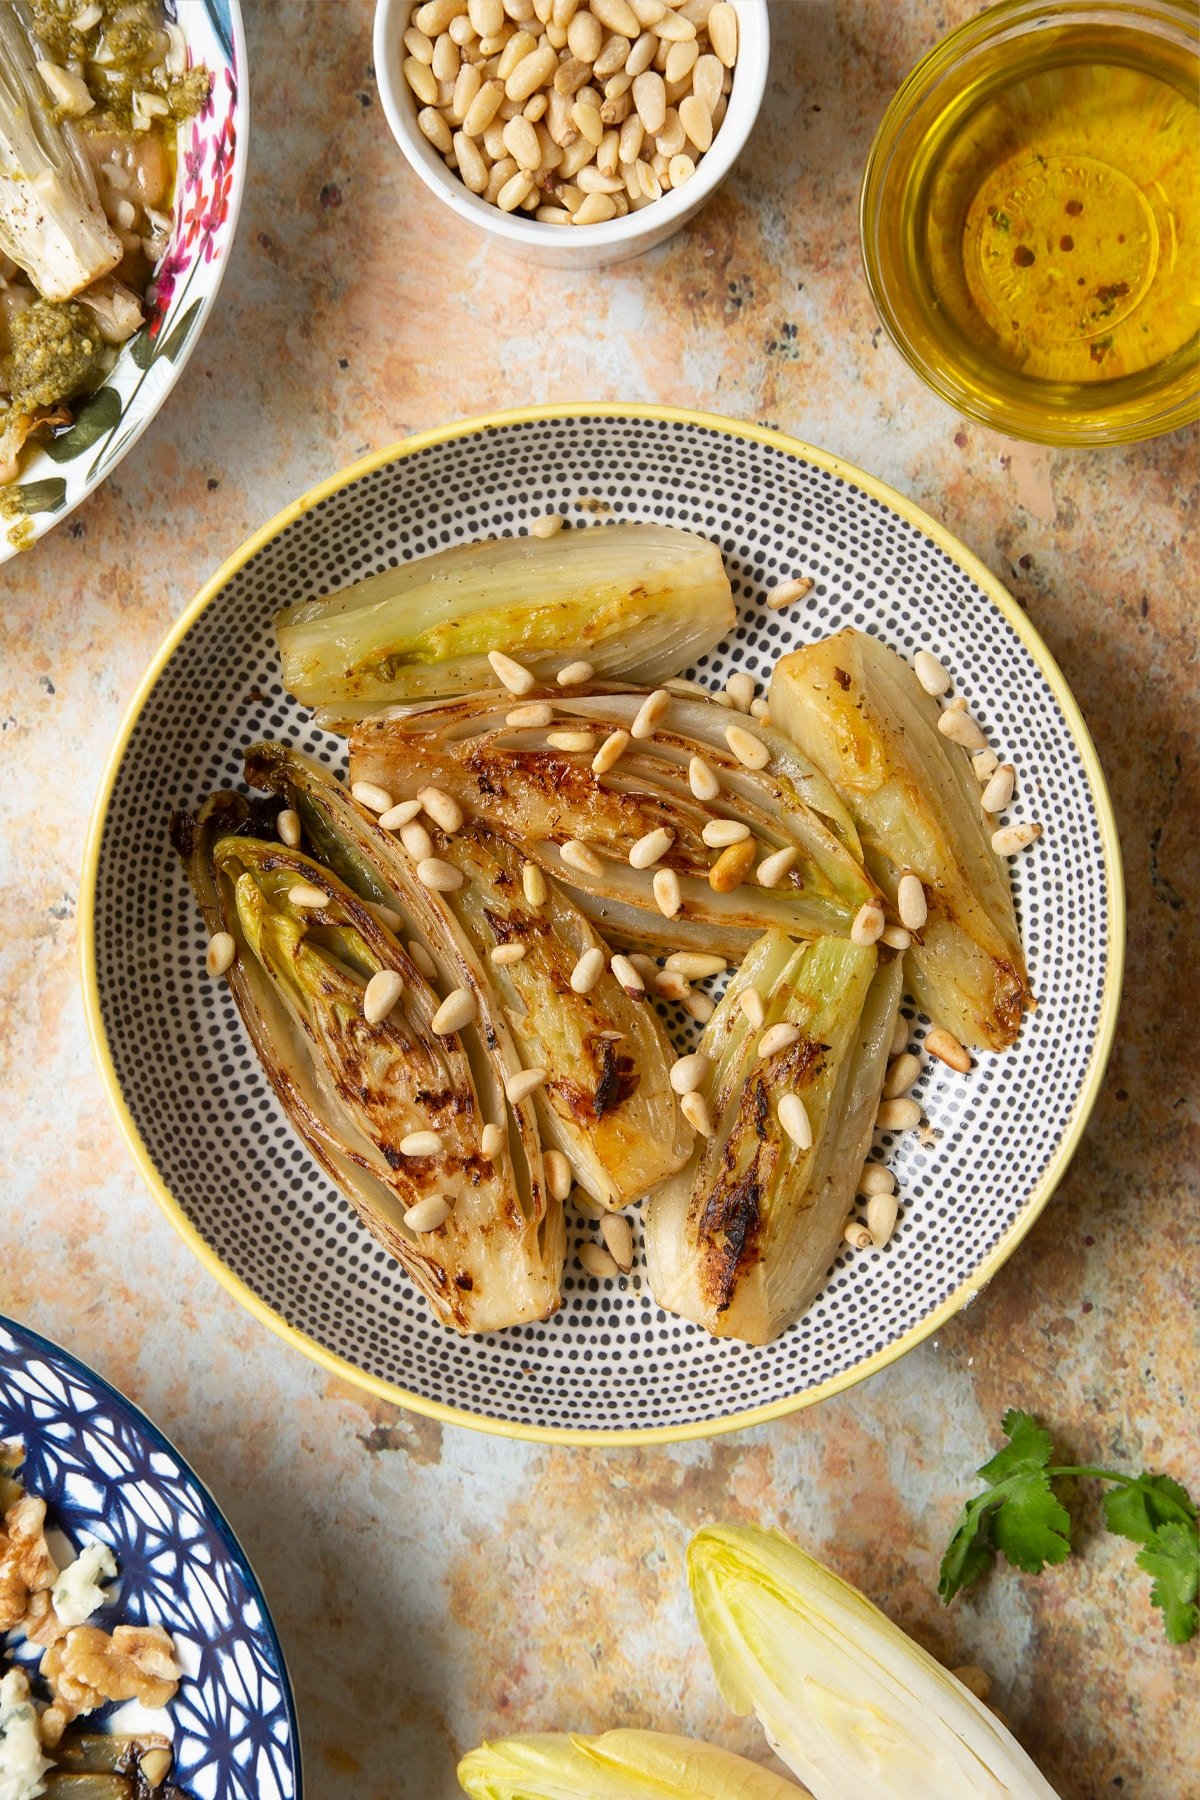 Braised chicory in a bowl with fennel and pine nuts.